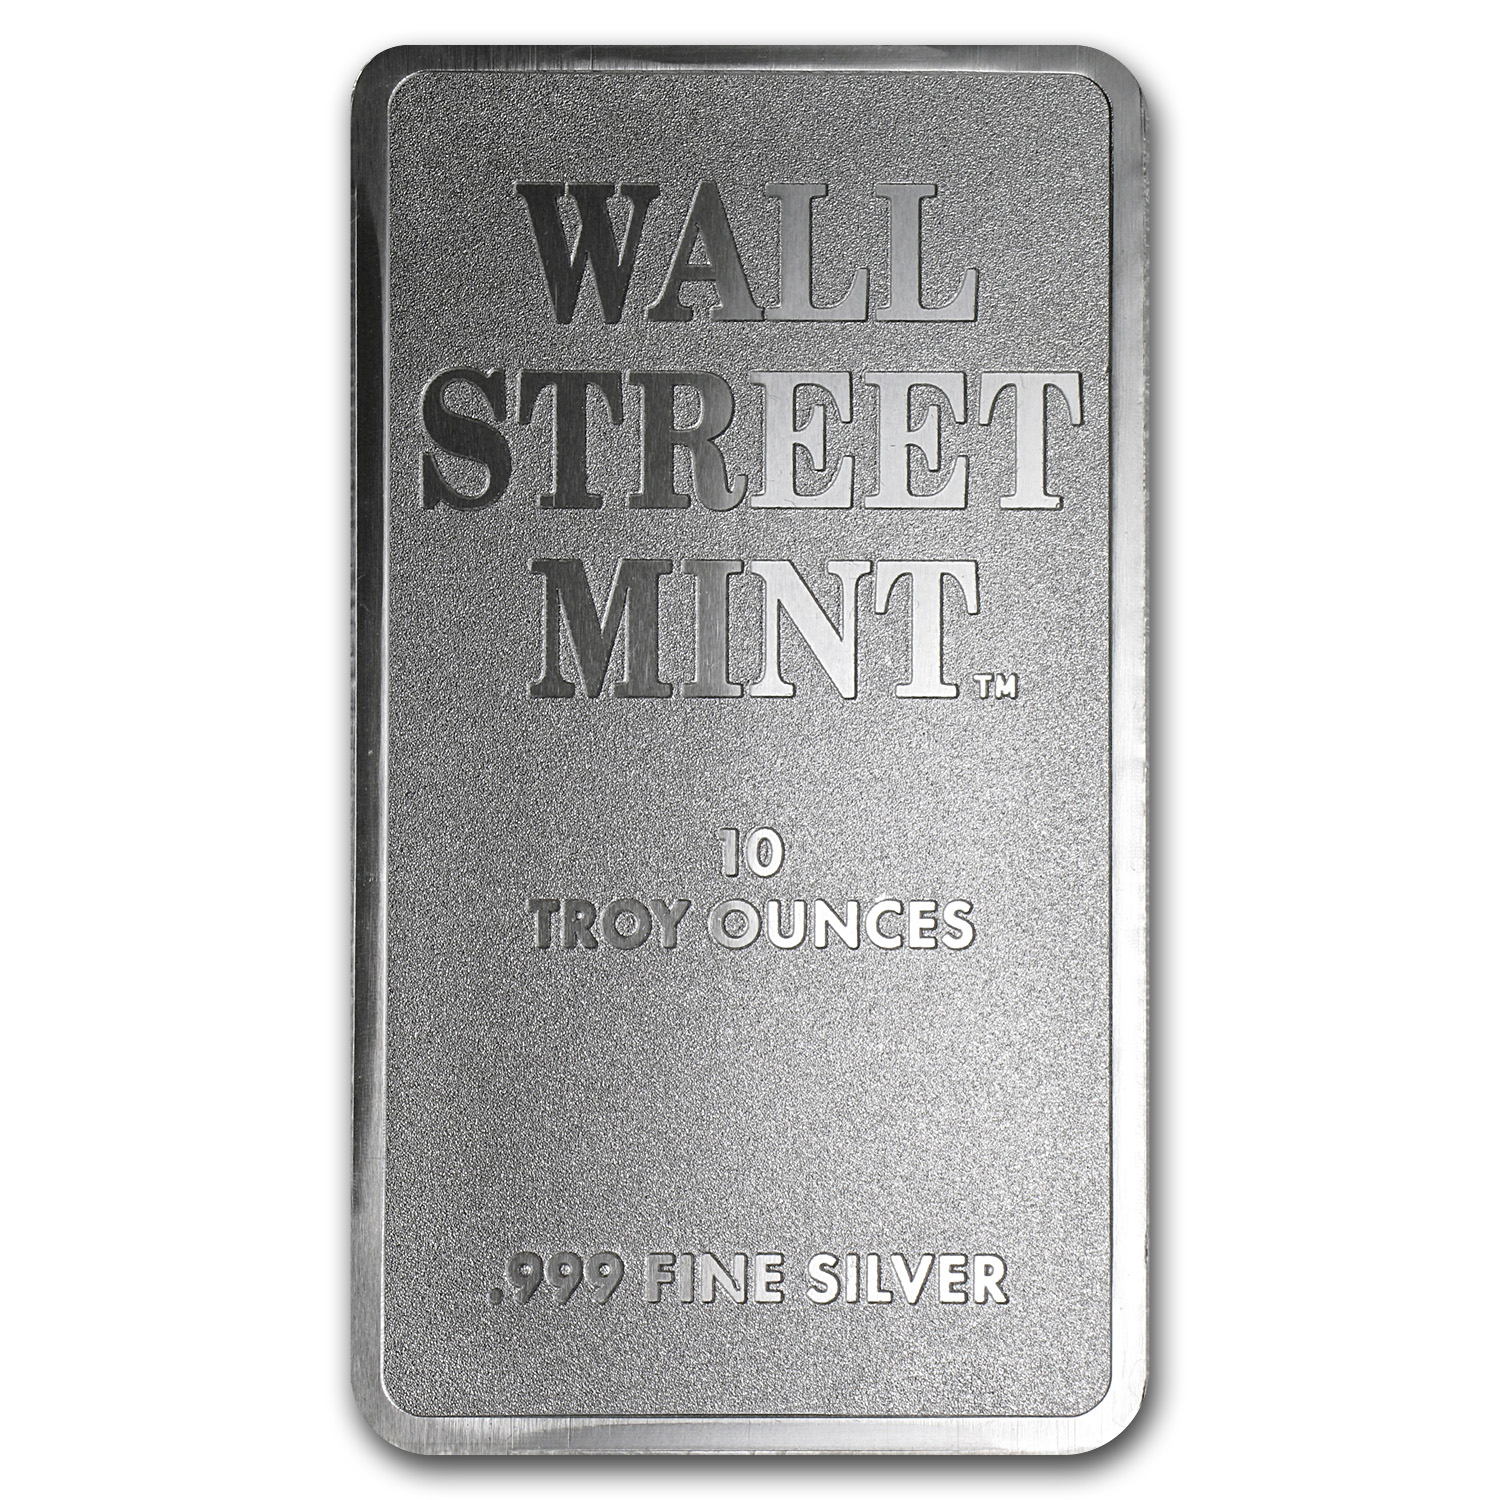 10 oz Silver Bar - Wall Street Mint (Type 2)